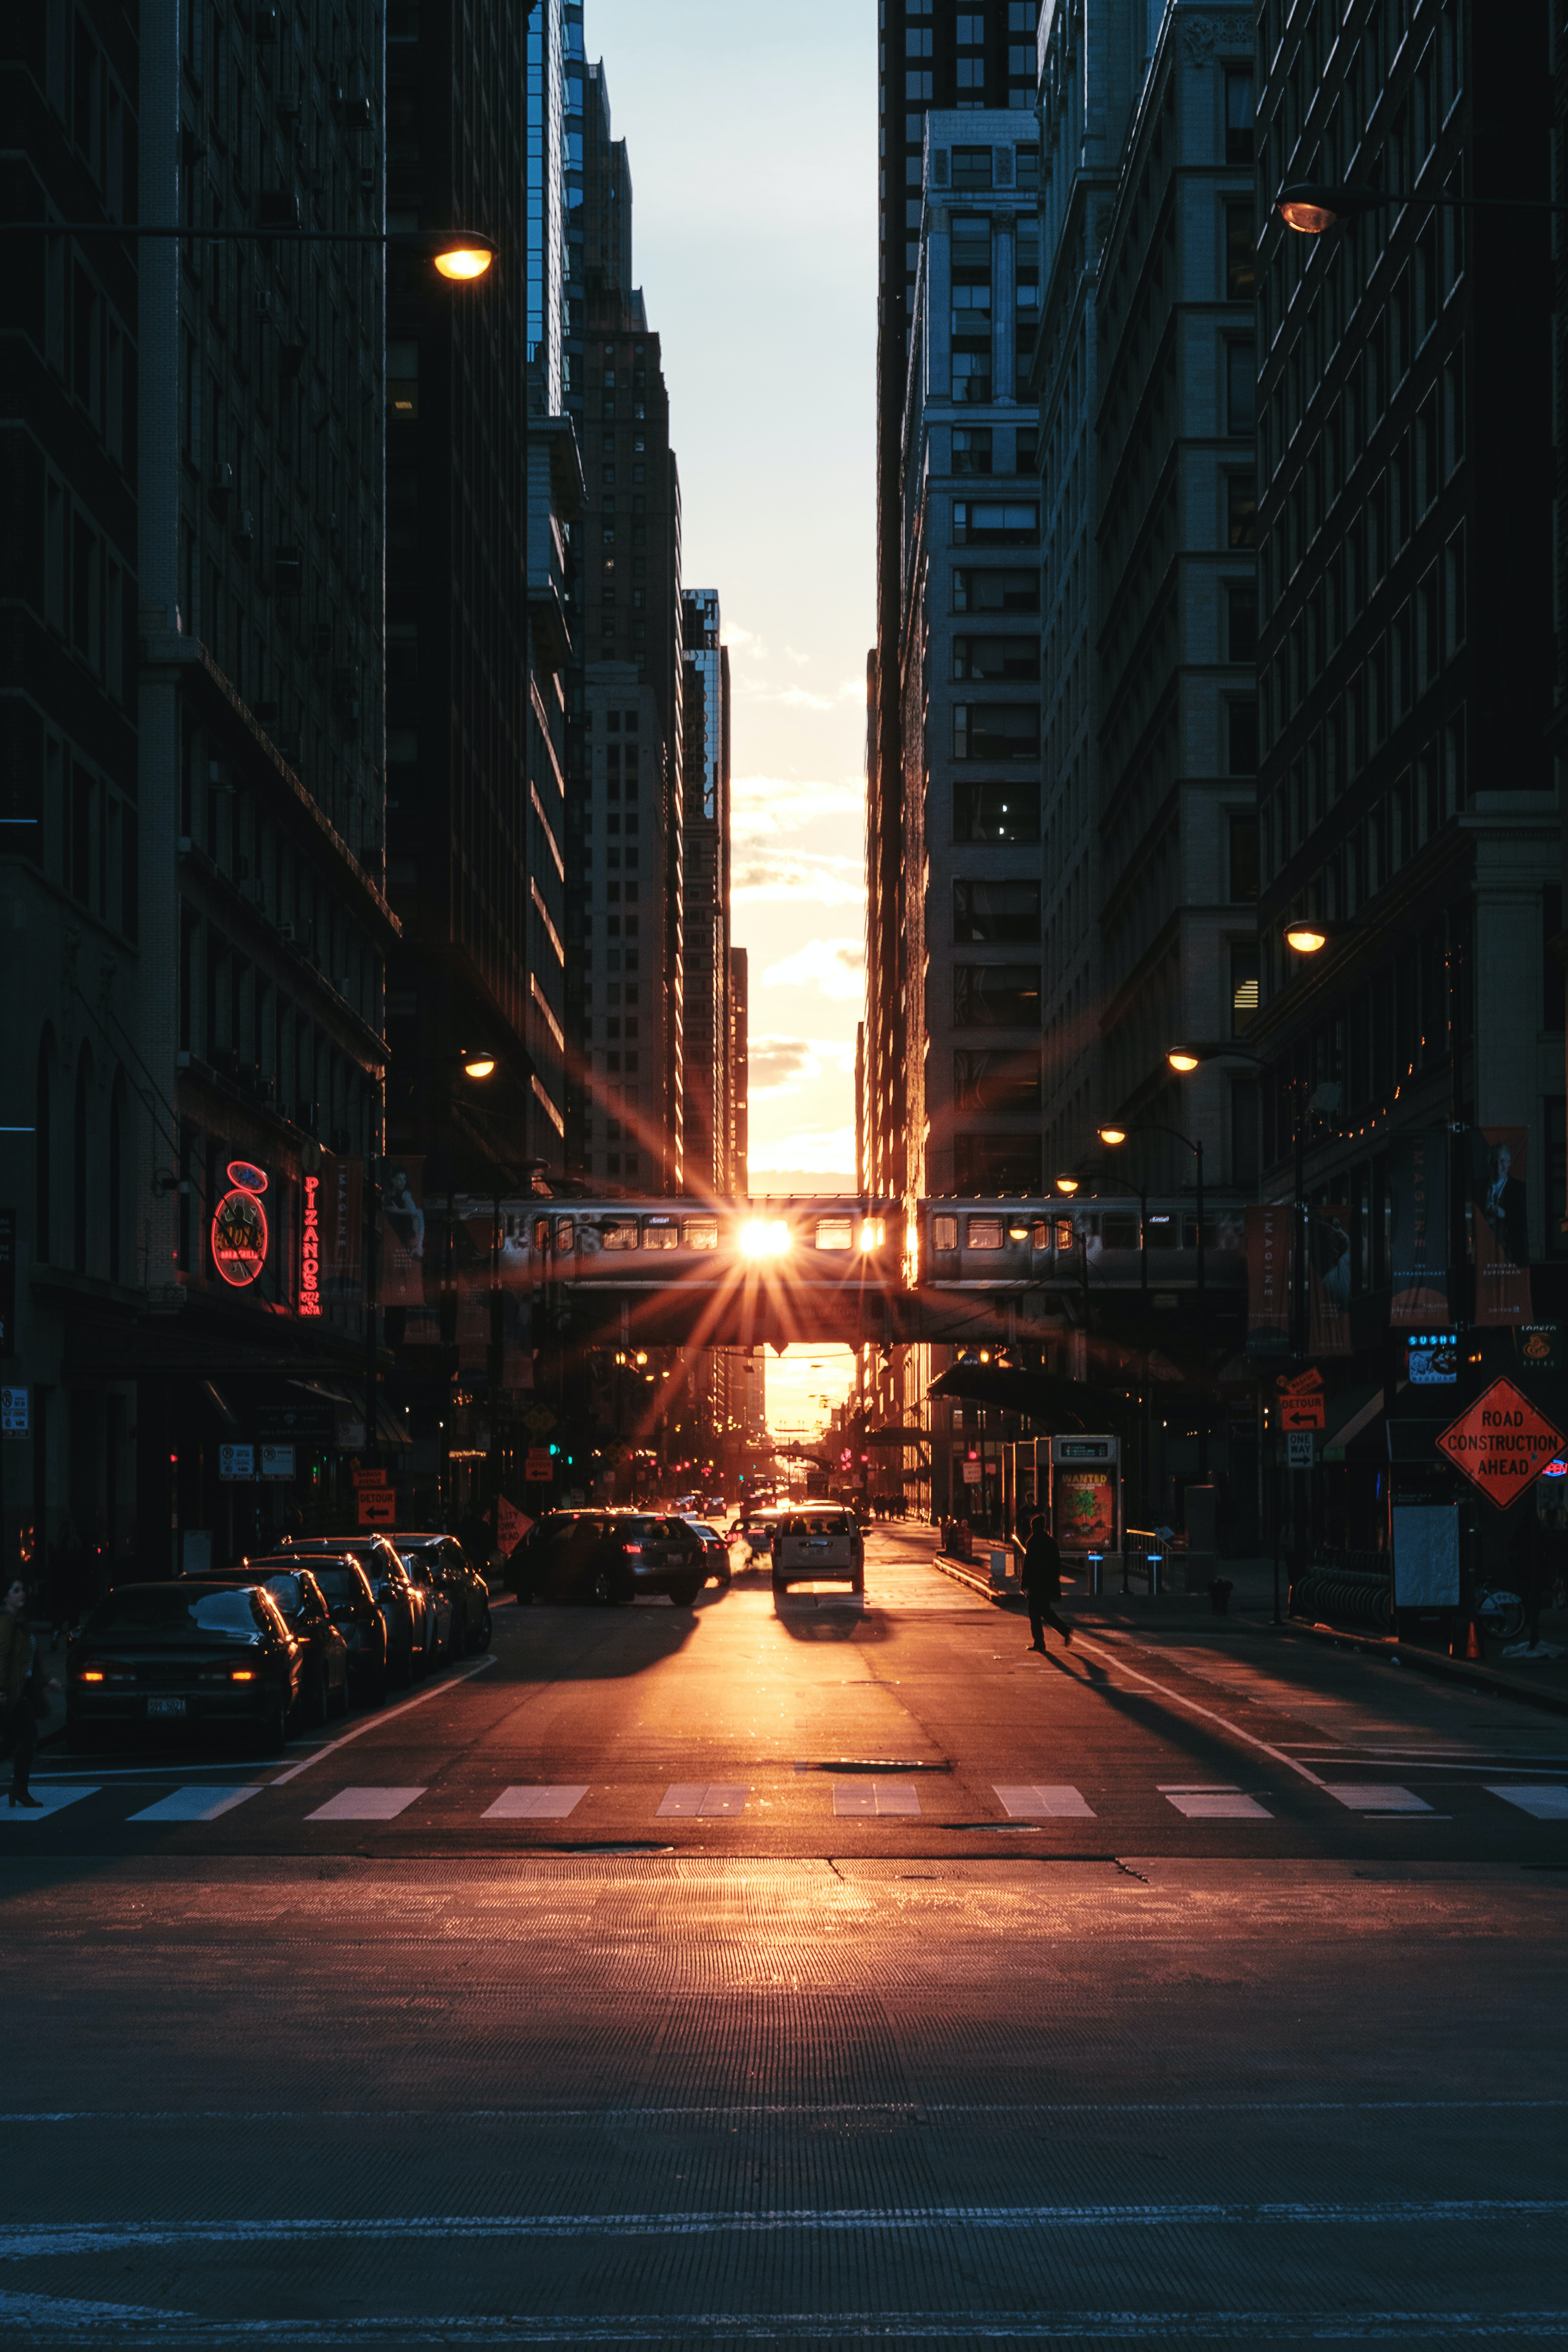 Sunset over a street in downtown Chicago